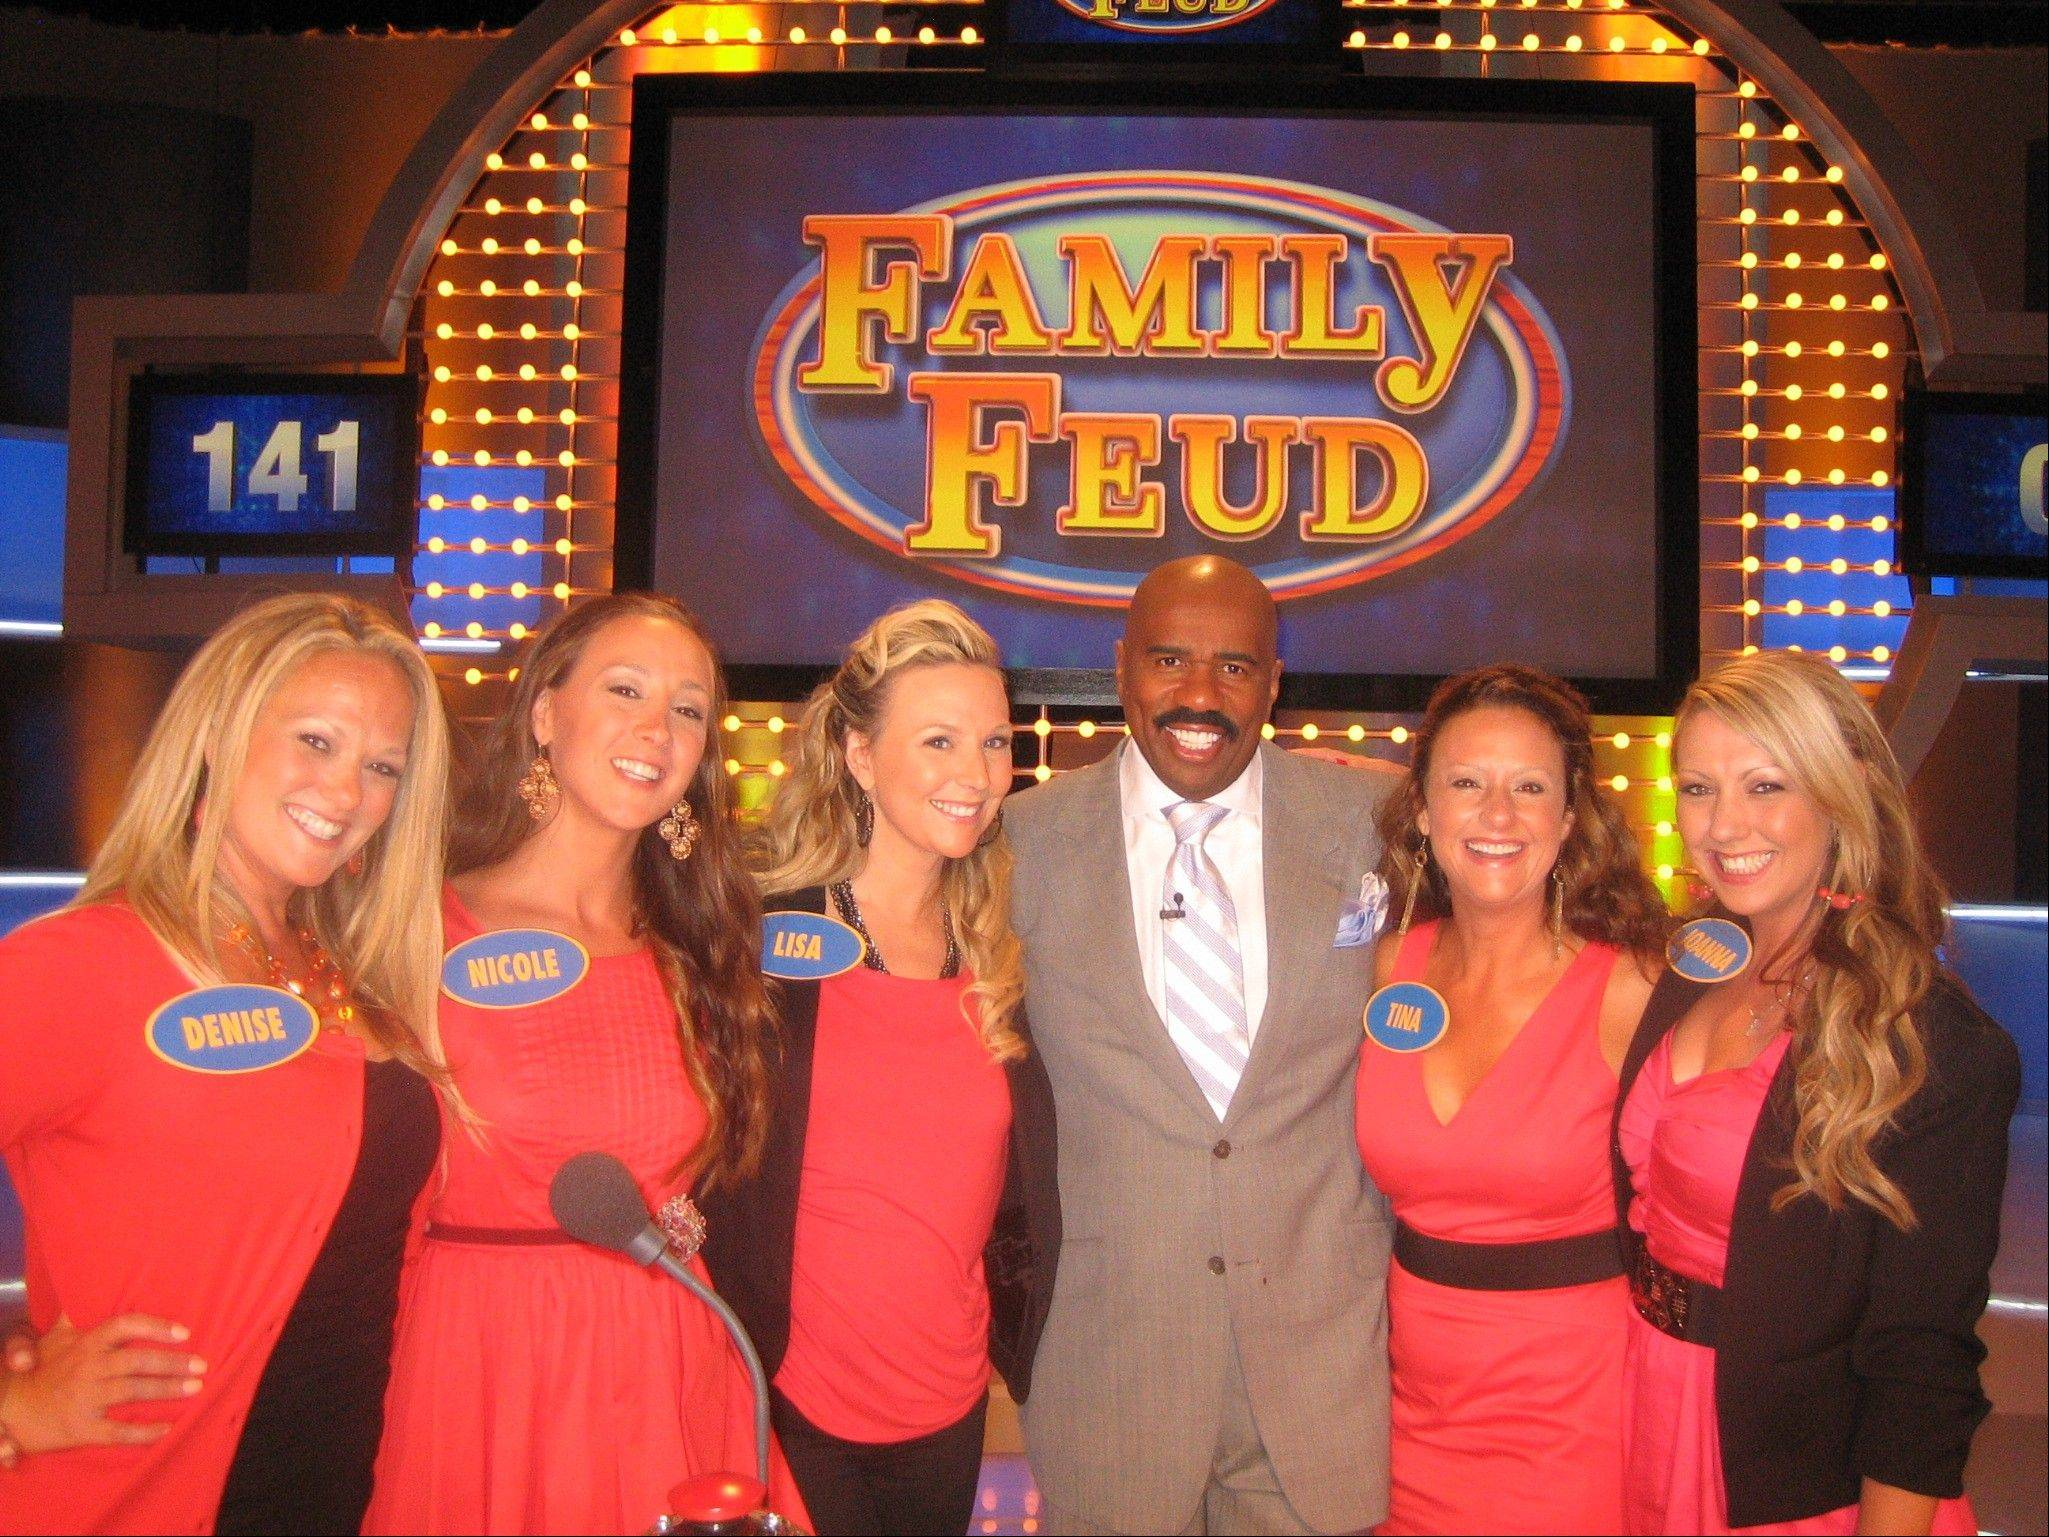 "Five sisters from the Northwest suburbs -- Tina O'Donnell, 42, of Mount Prospect, Lisa Altmeyer, 40, of Elgin, Denise Spallone, 37, of Park Ridge, Nicole Dubak, 35, of Des Plaines, and Joanna Molnar, 32, of Park Ridge -- are featured on tonight's episode of ""Family Feud"" after winning $20,500 in the first round Wednesday. The show, hosted by Steve Harvey, airs at 5 p.m. on WPWR-TV Channel 50. The siblings appear on the show again at 5 p.m. Friday."